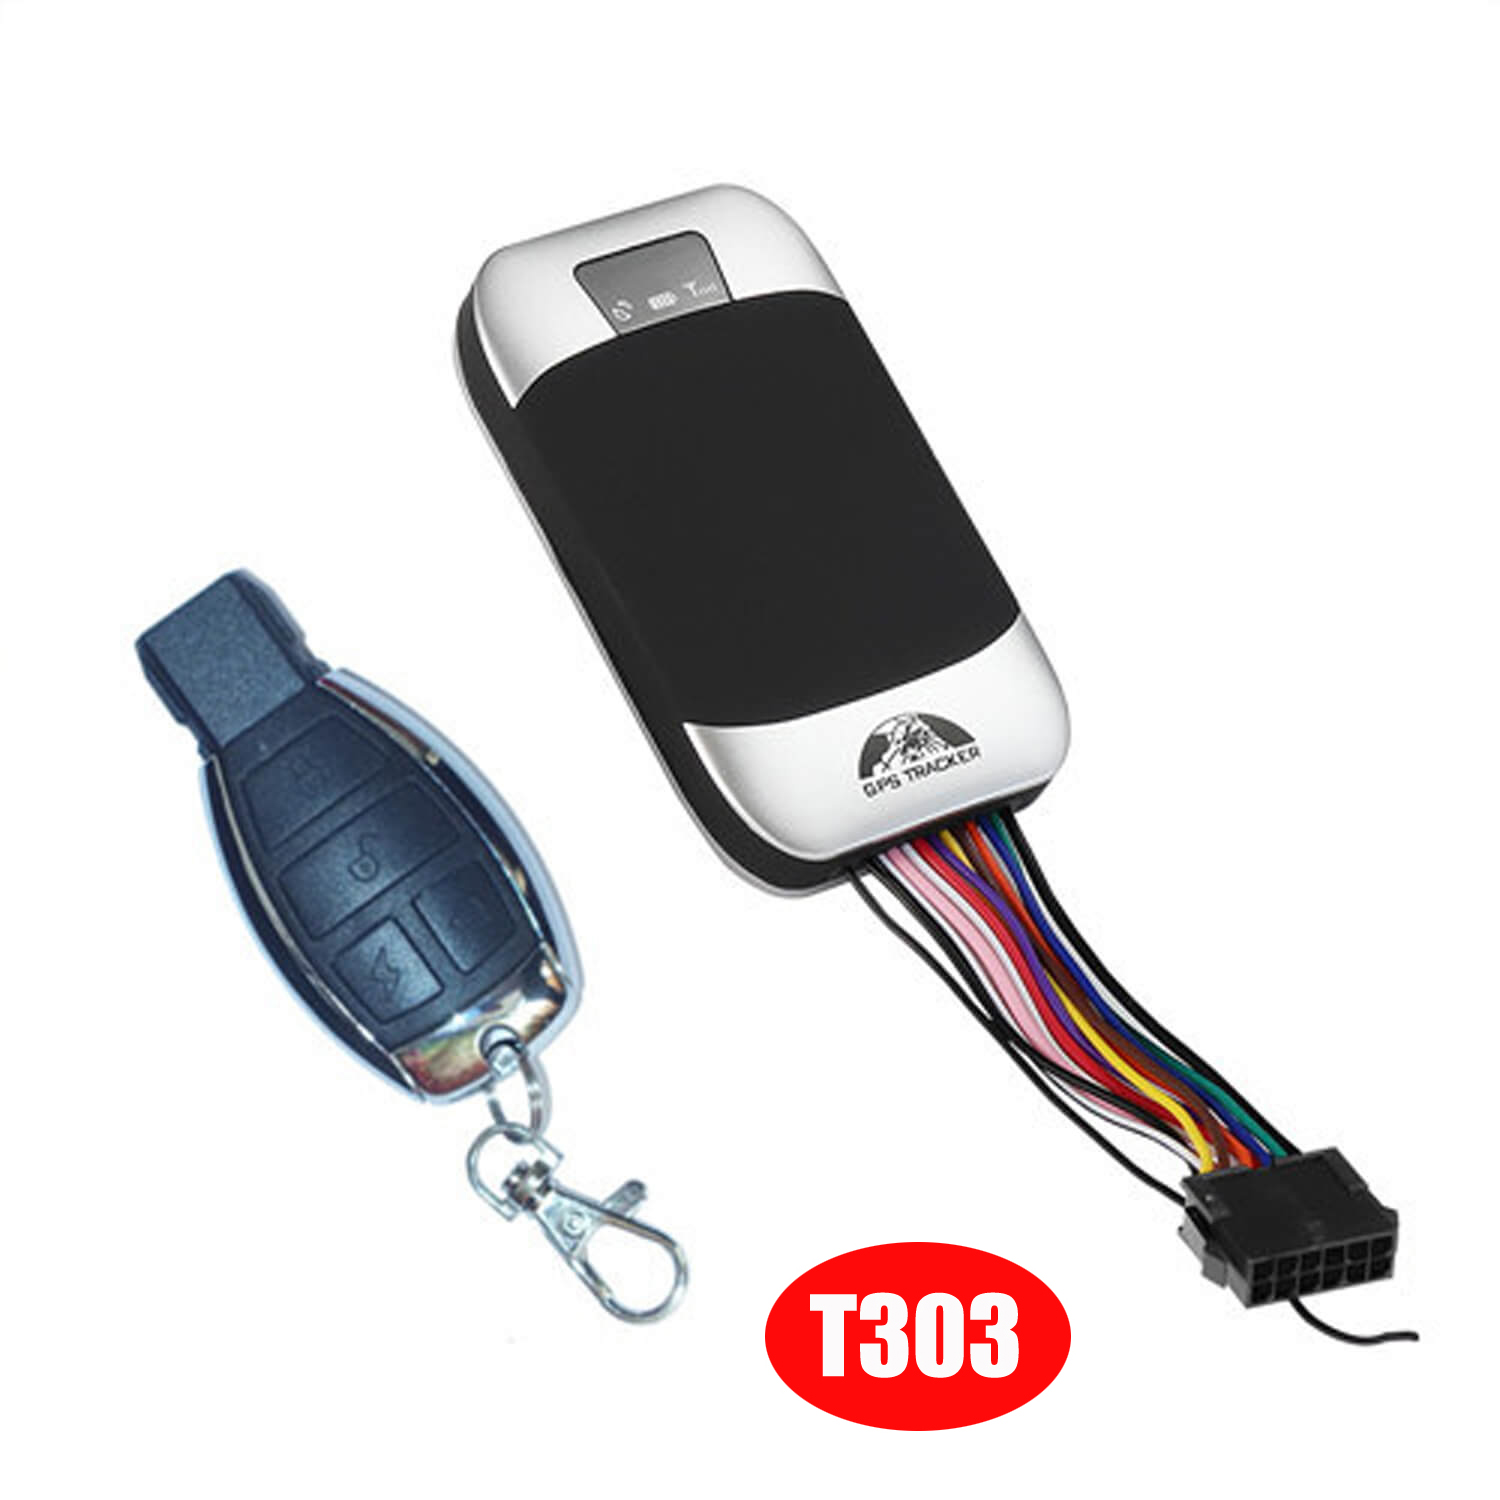 High Quality IP67 waterproof Car Security GPS Tracker with Overspeed Alarm T303